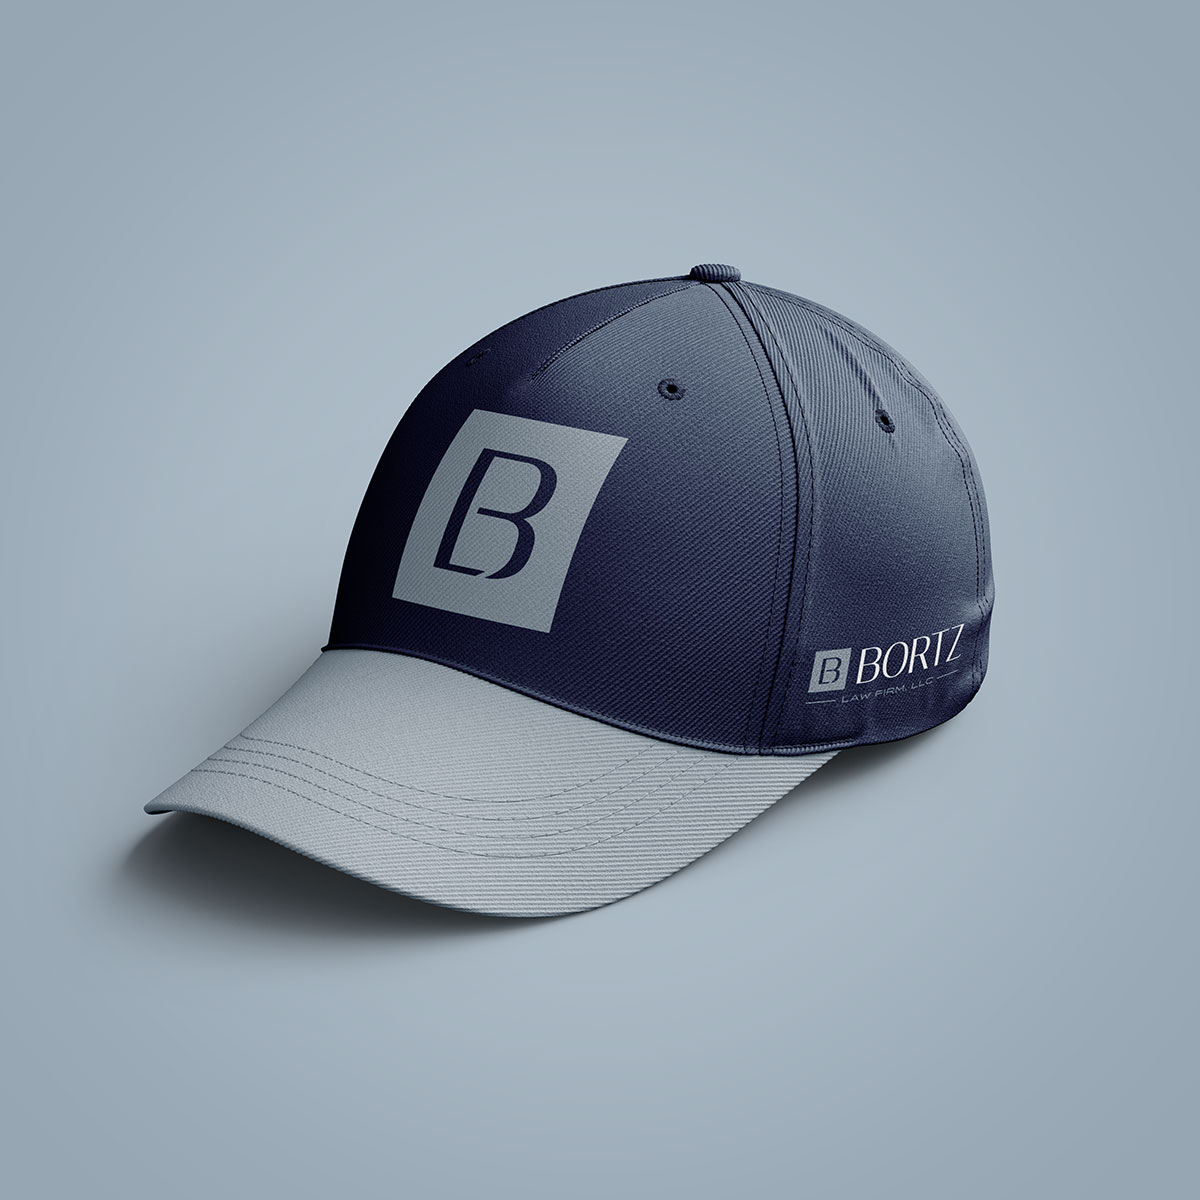 bortz-hat-design